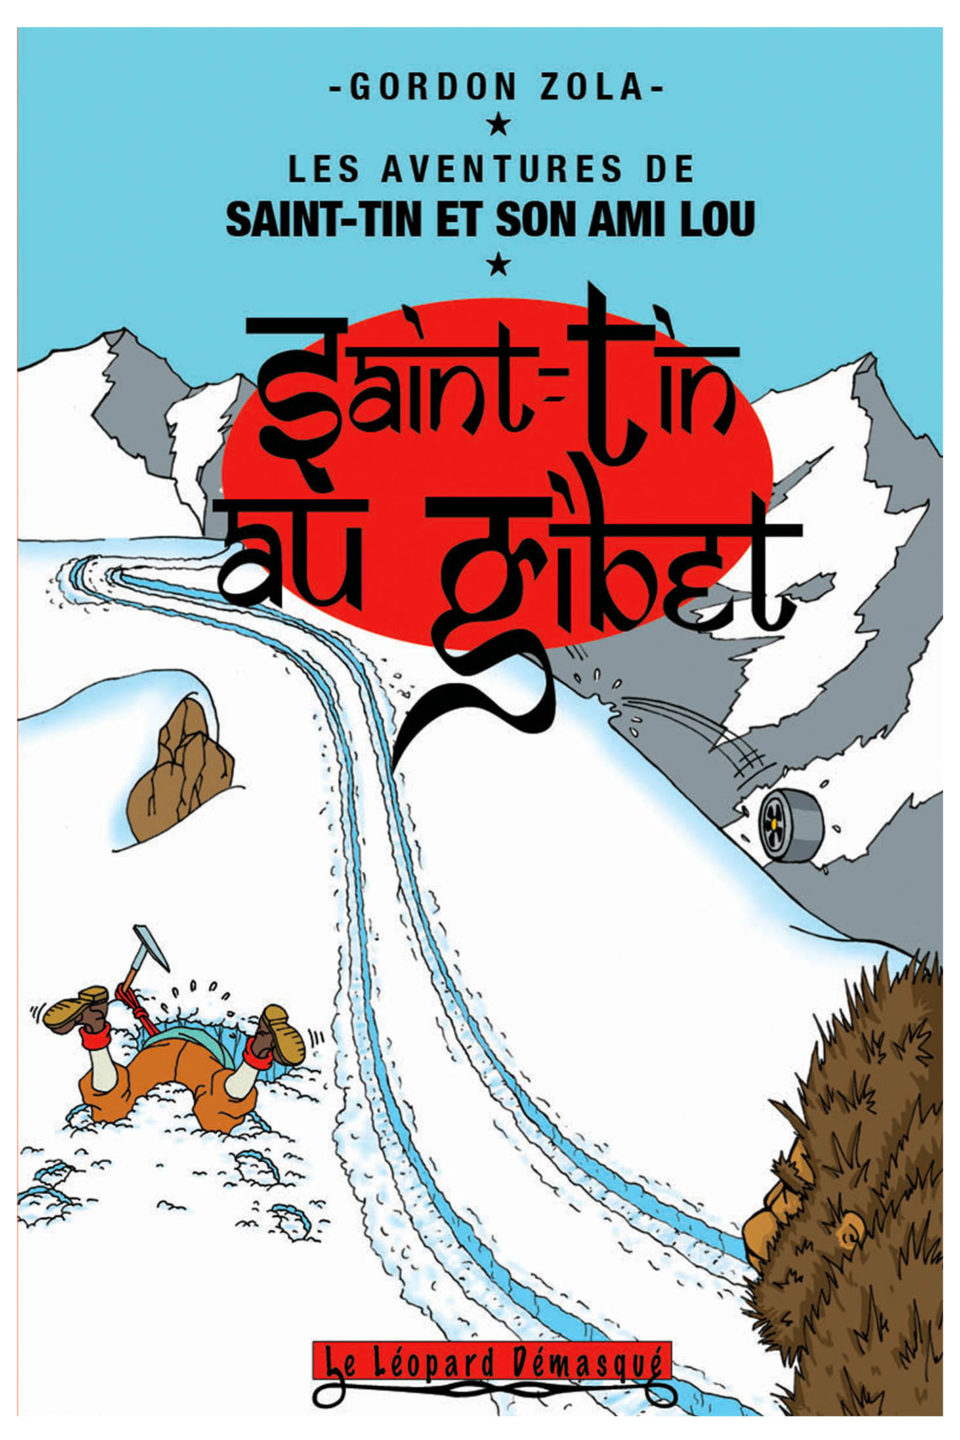 saint-tin-au-gibet